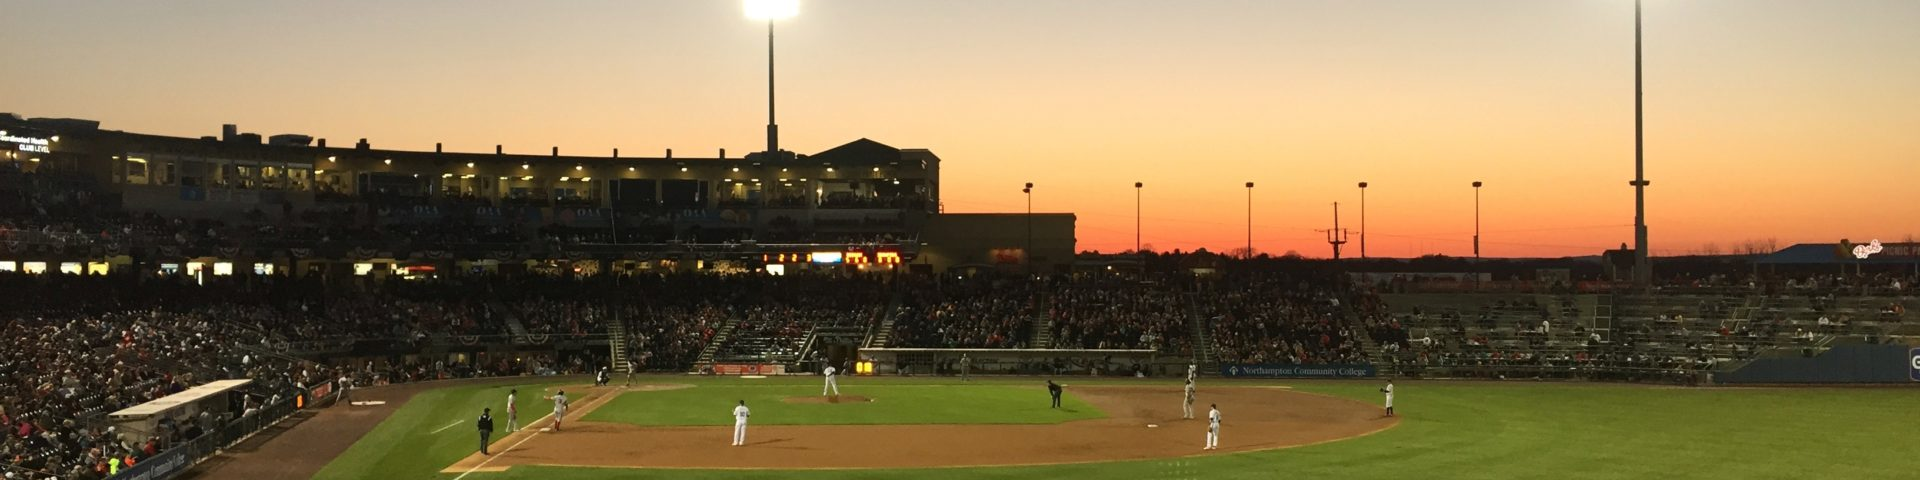 Sunset at an early spring IronPigs baseball game. The big AAA lights are lit up and the sky is just beginning to fade to black.